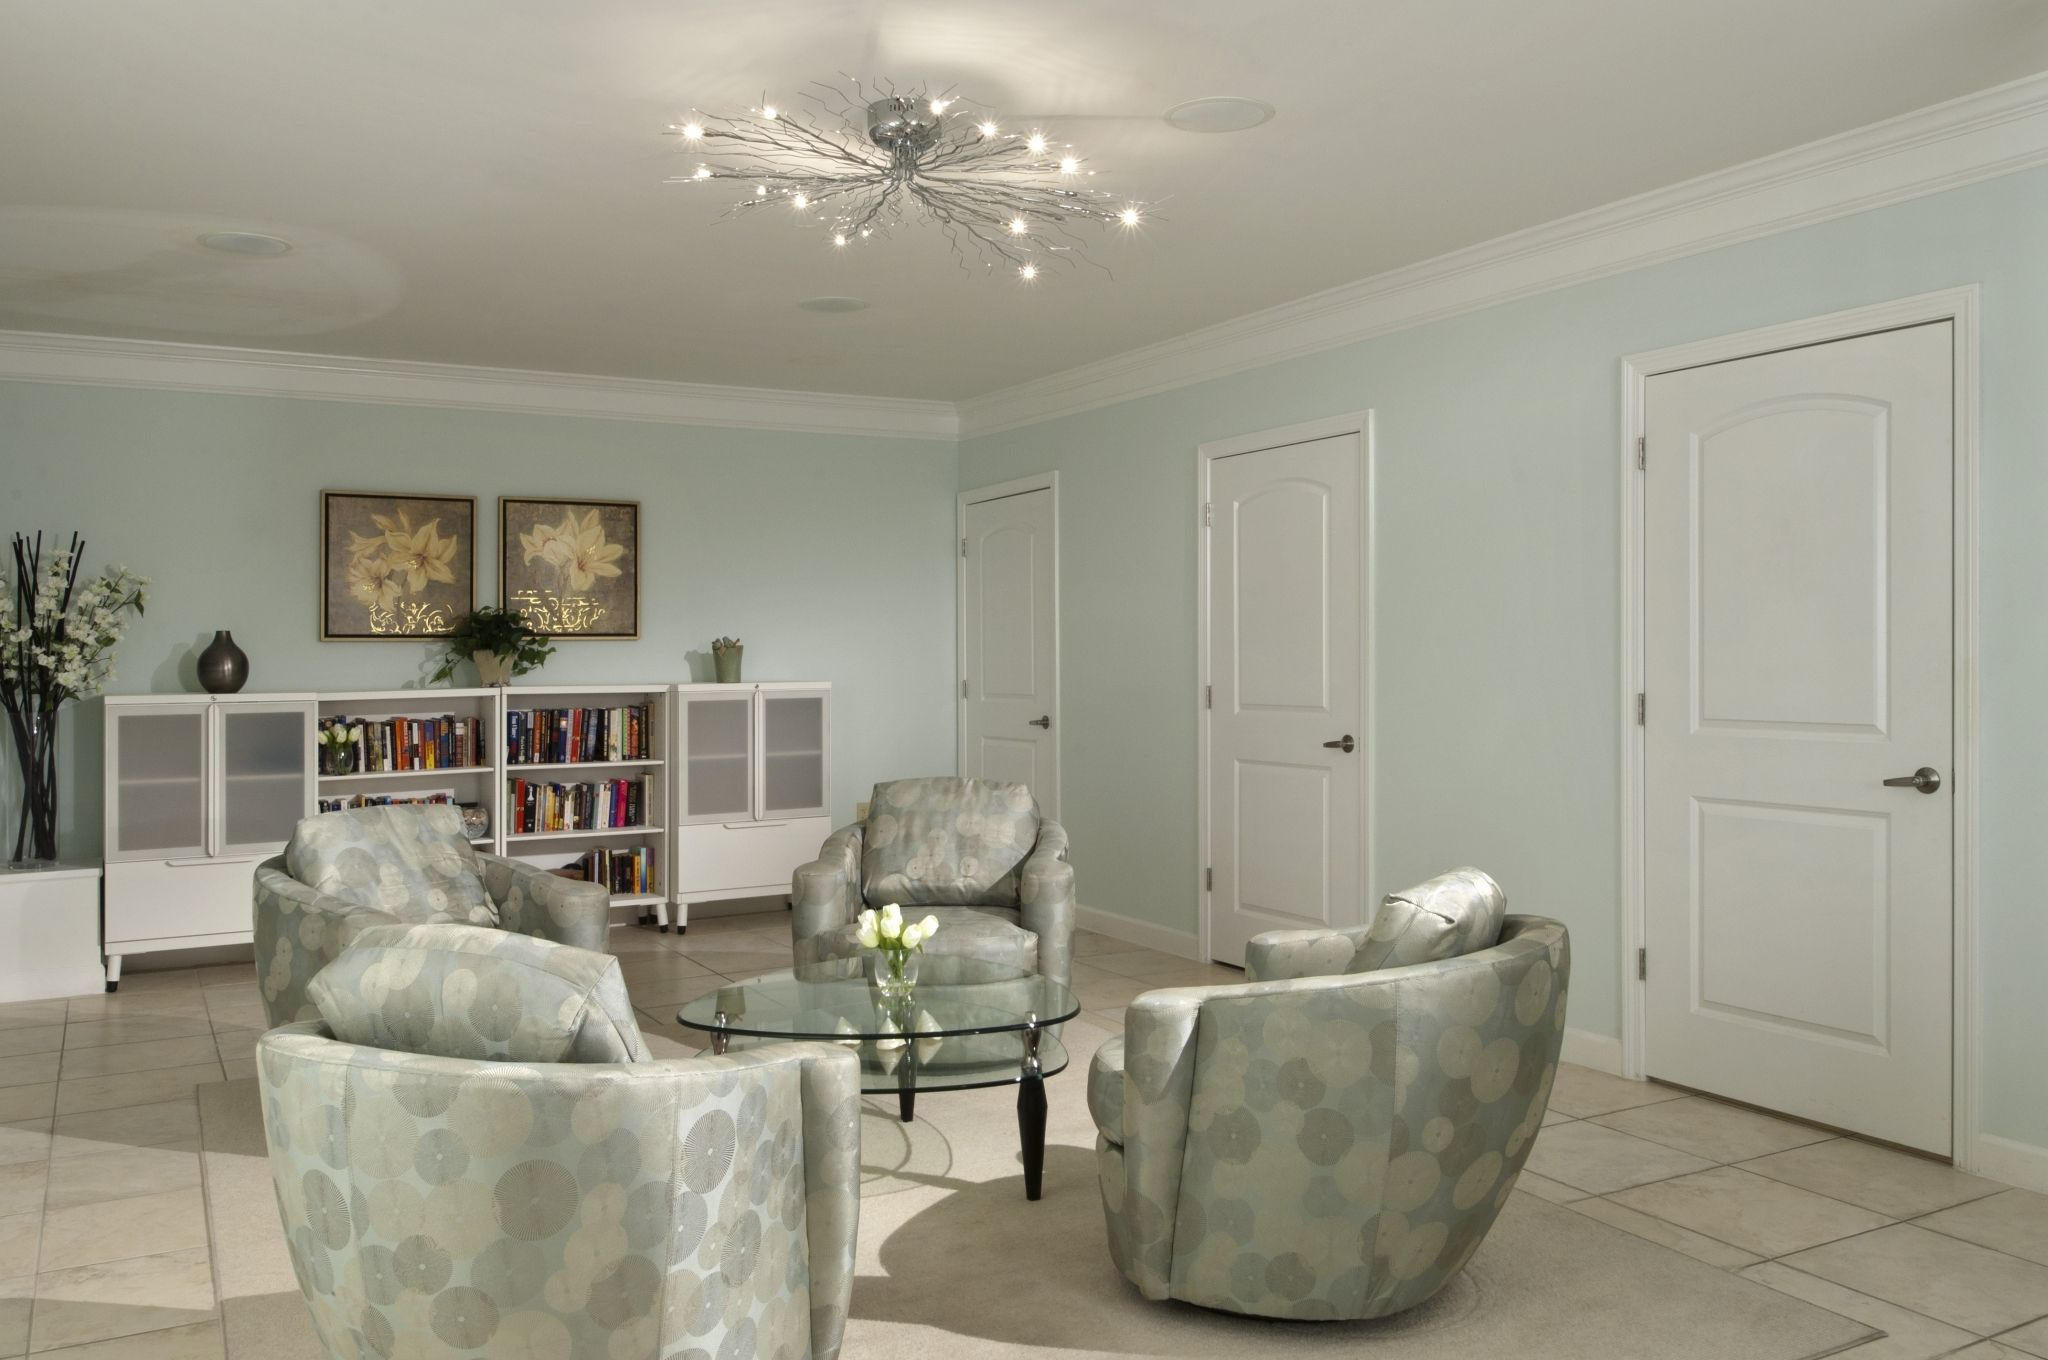 Alexander at Patroon Creek offers Luxury Apartments in